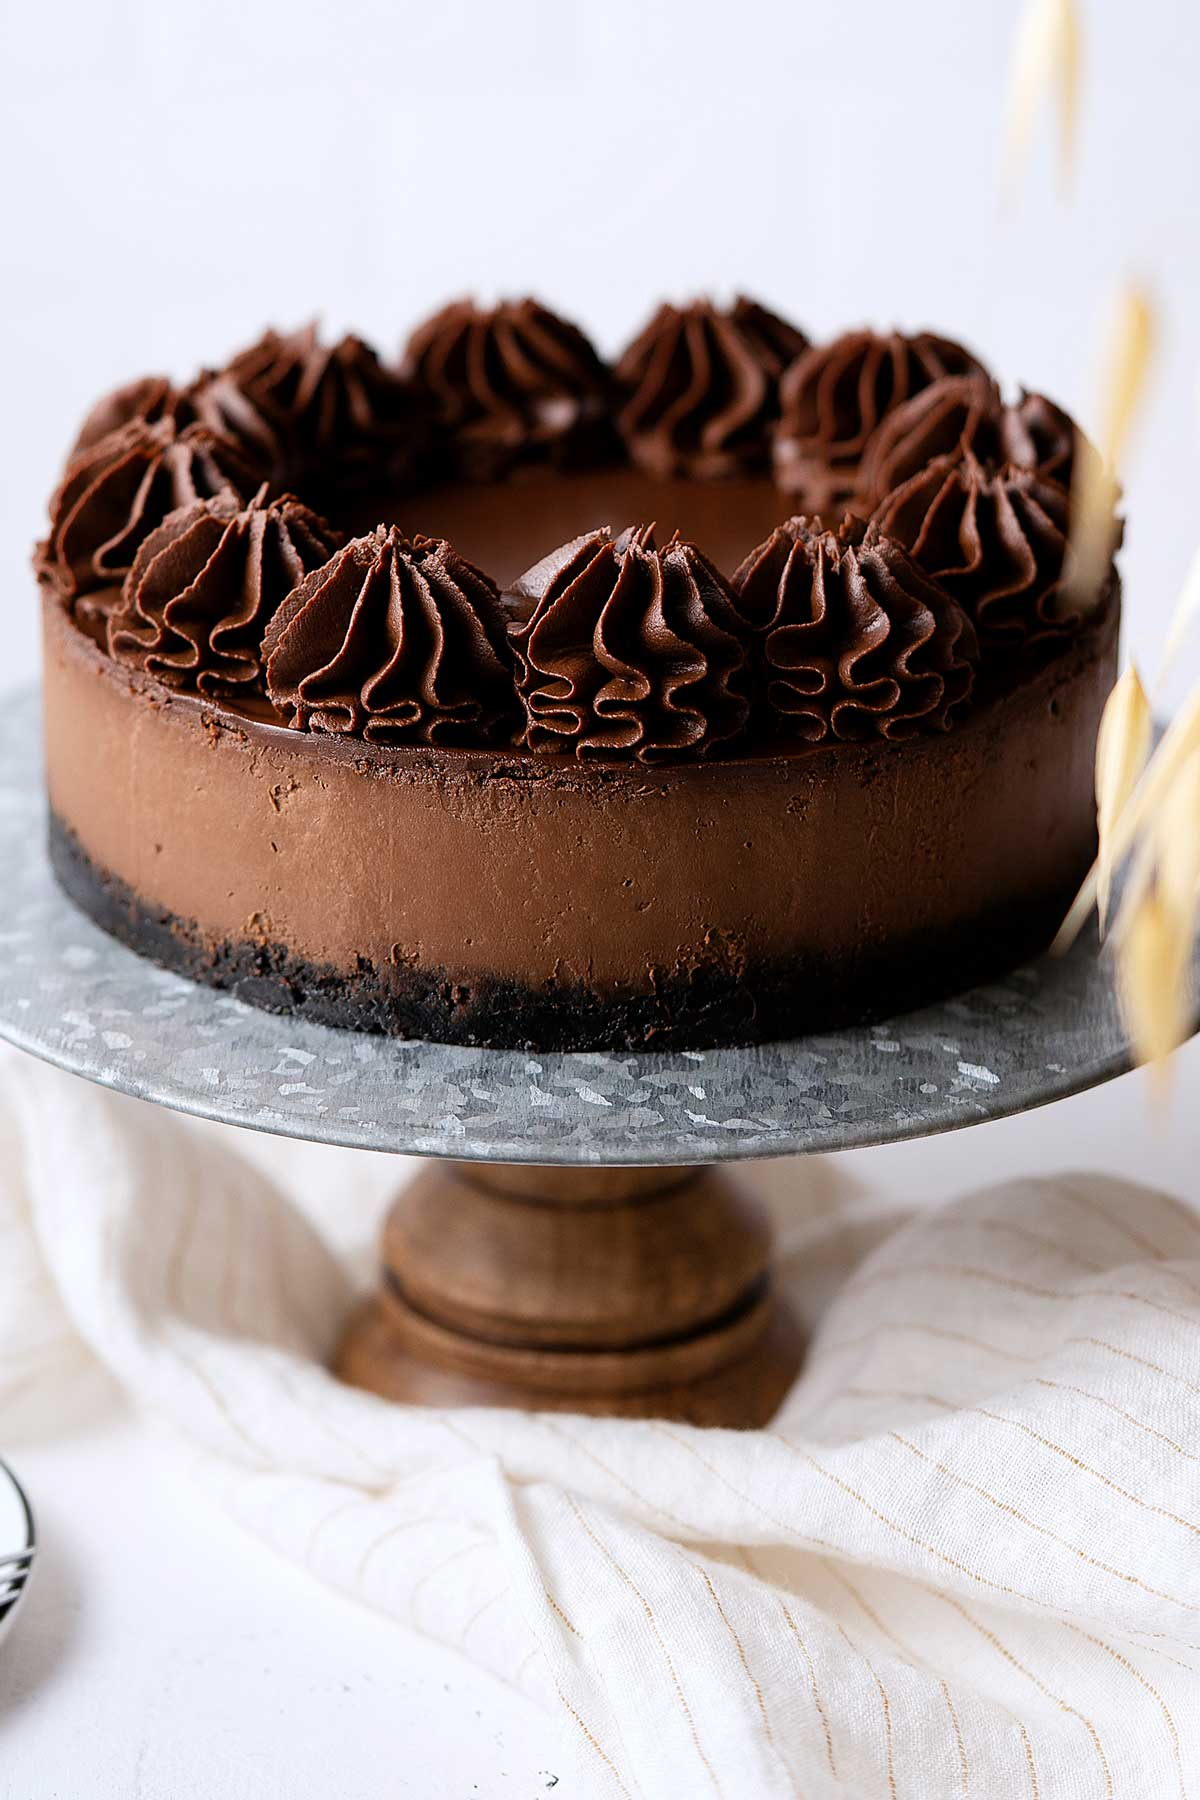 chocolate cheesecake on a cake stand.